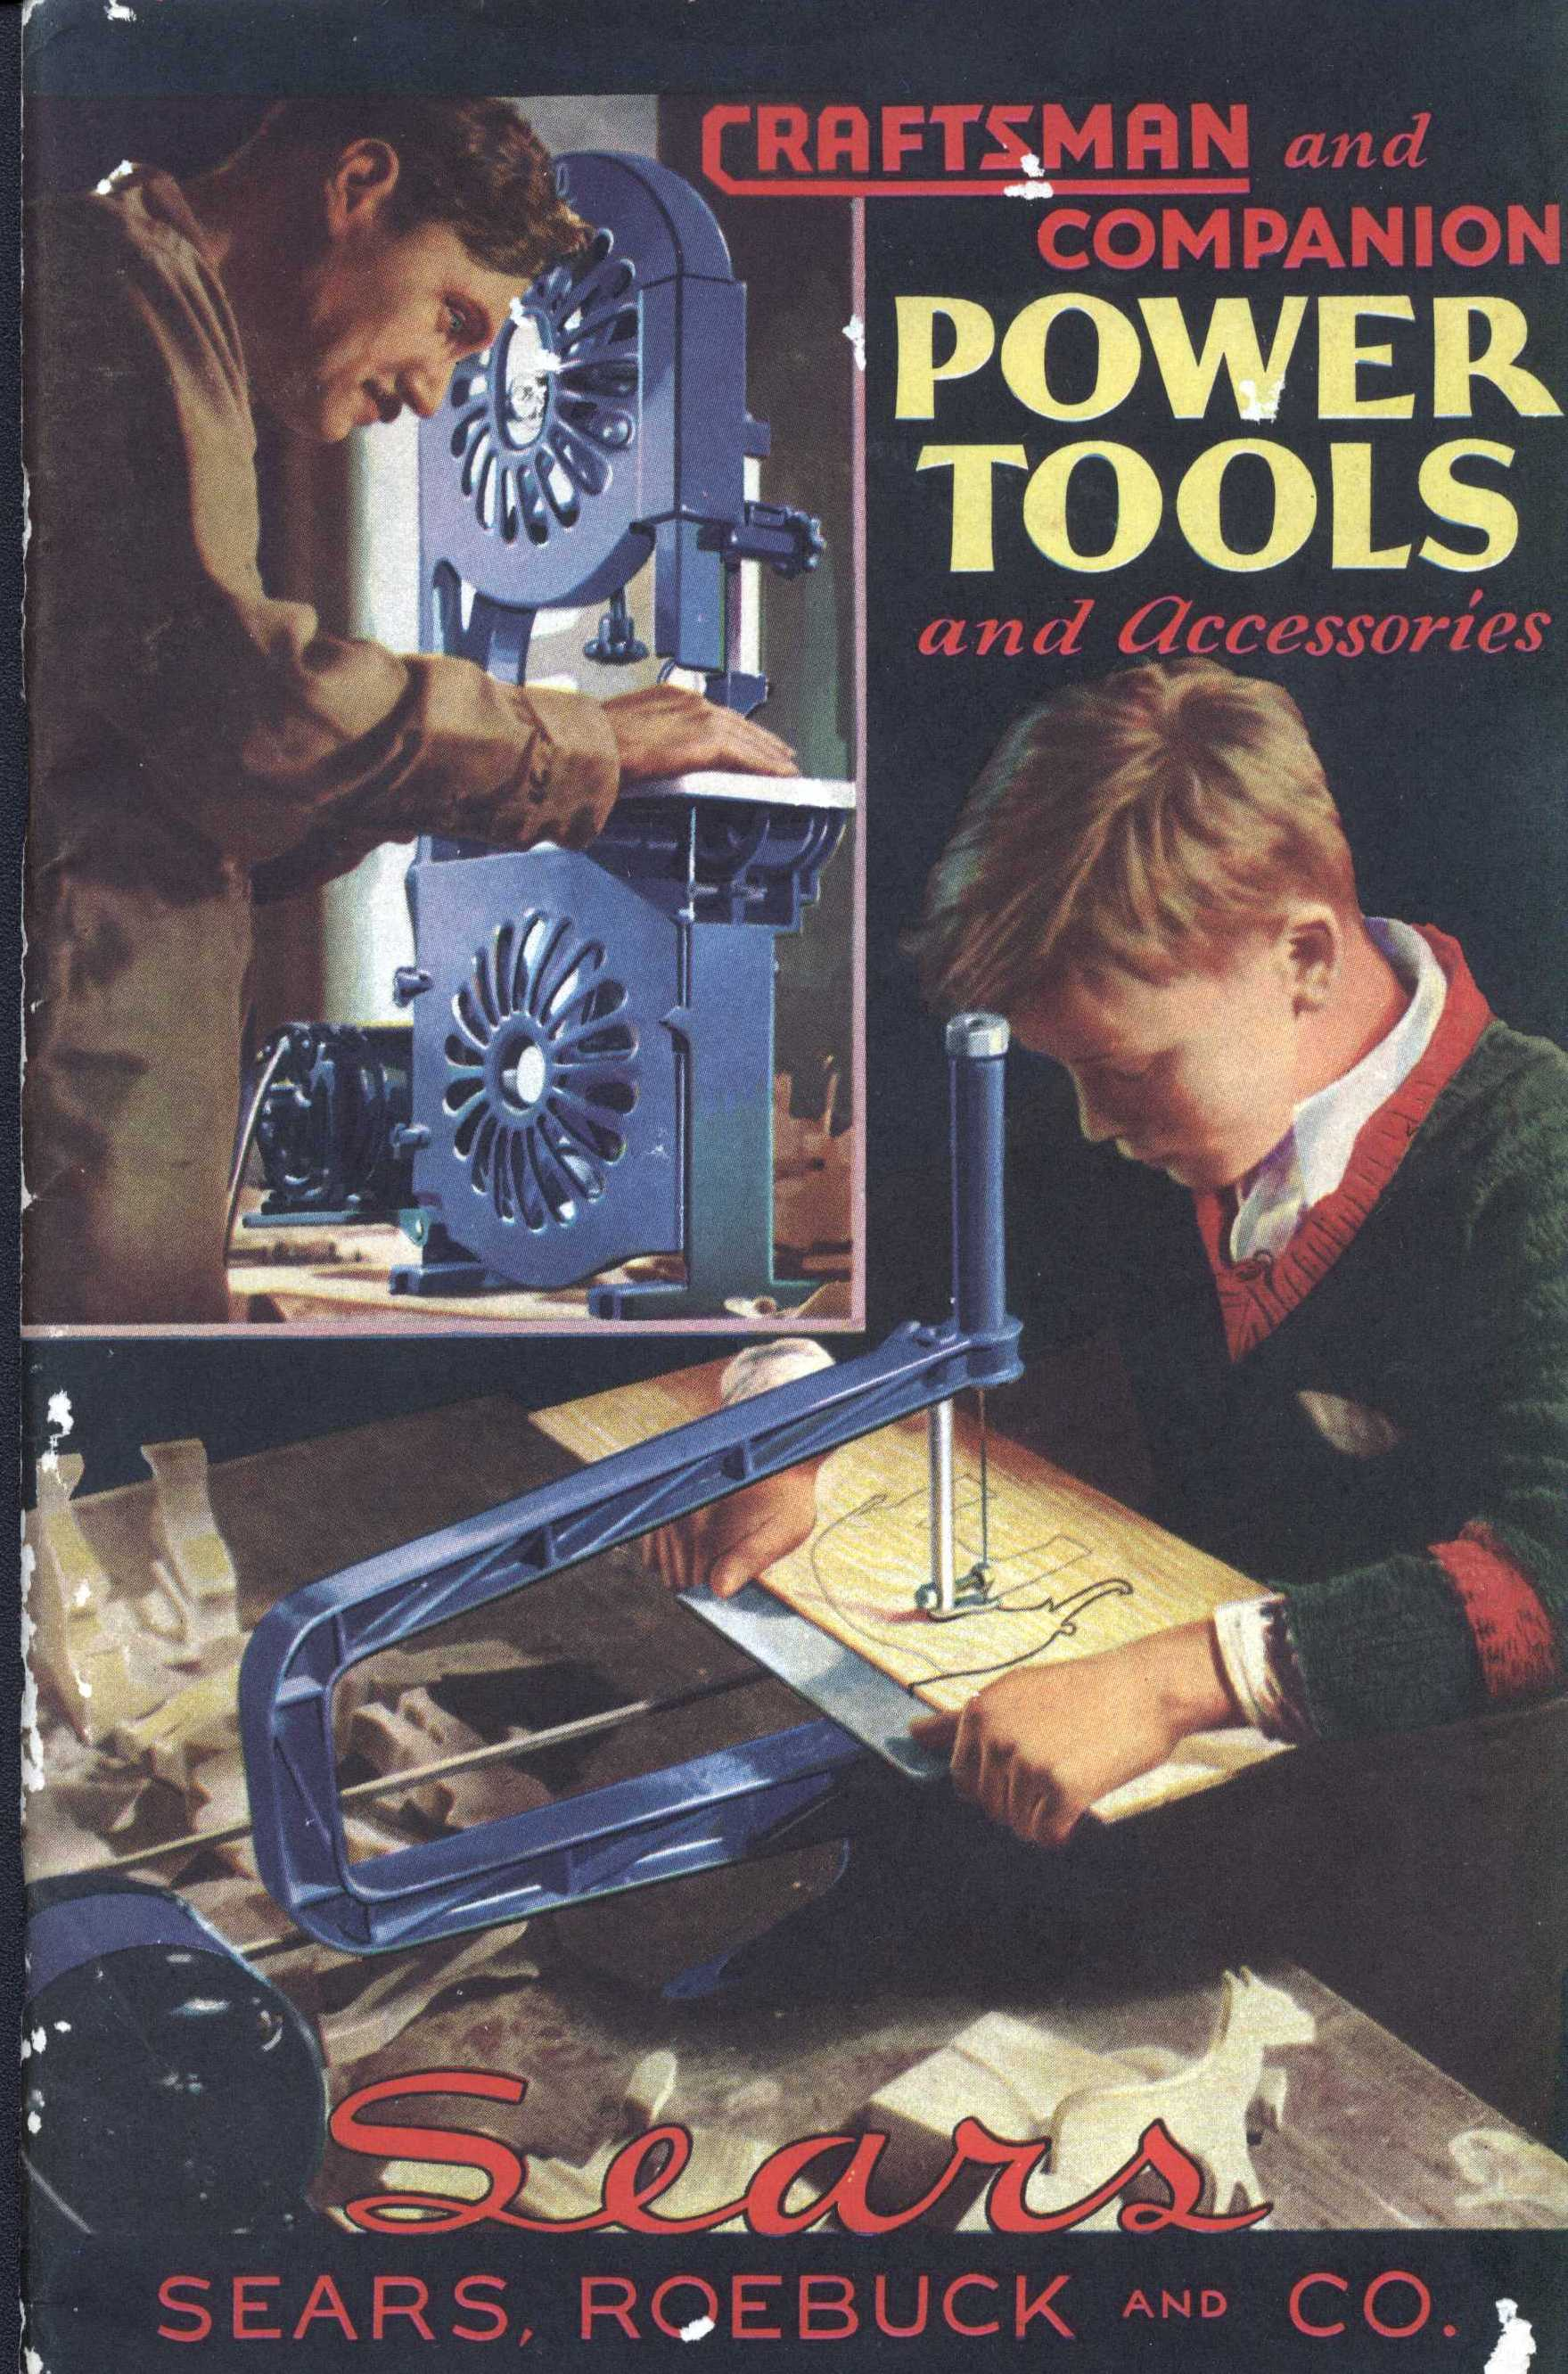 craftsman1933cover.jpg